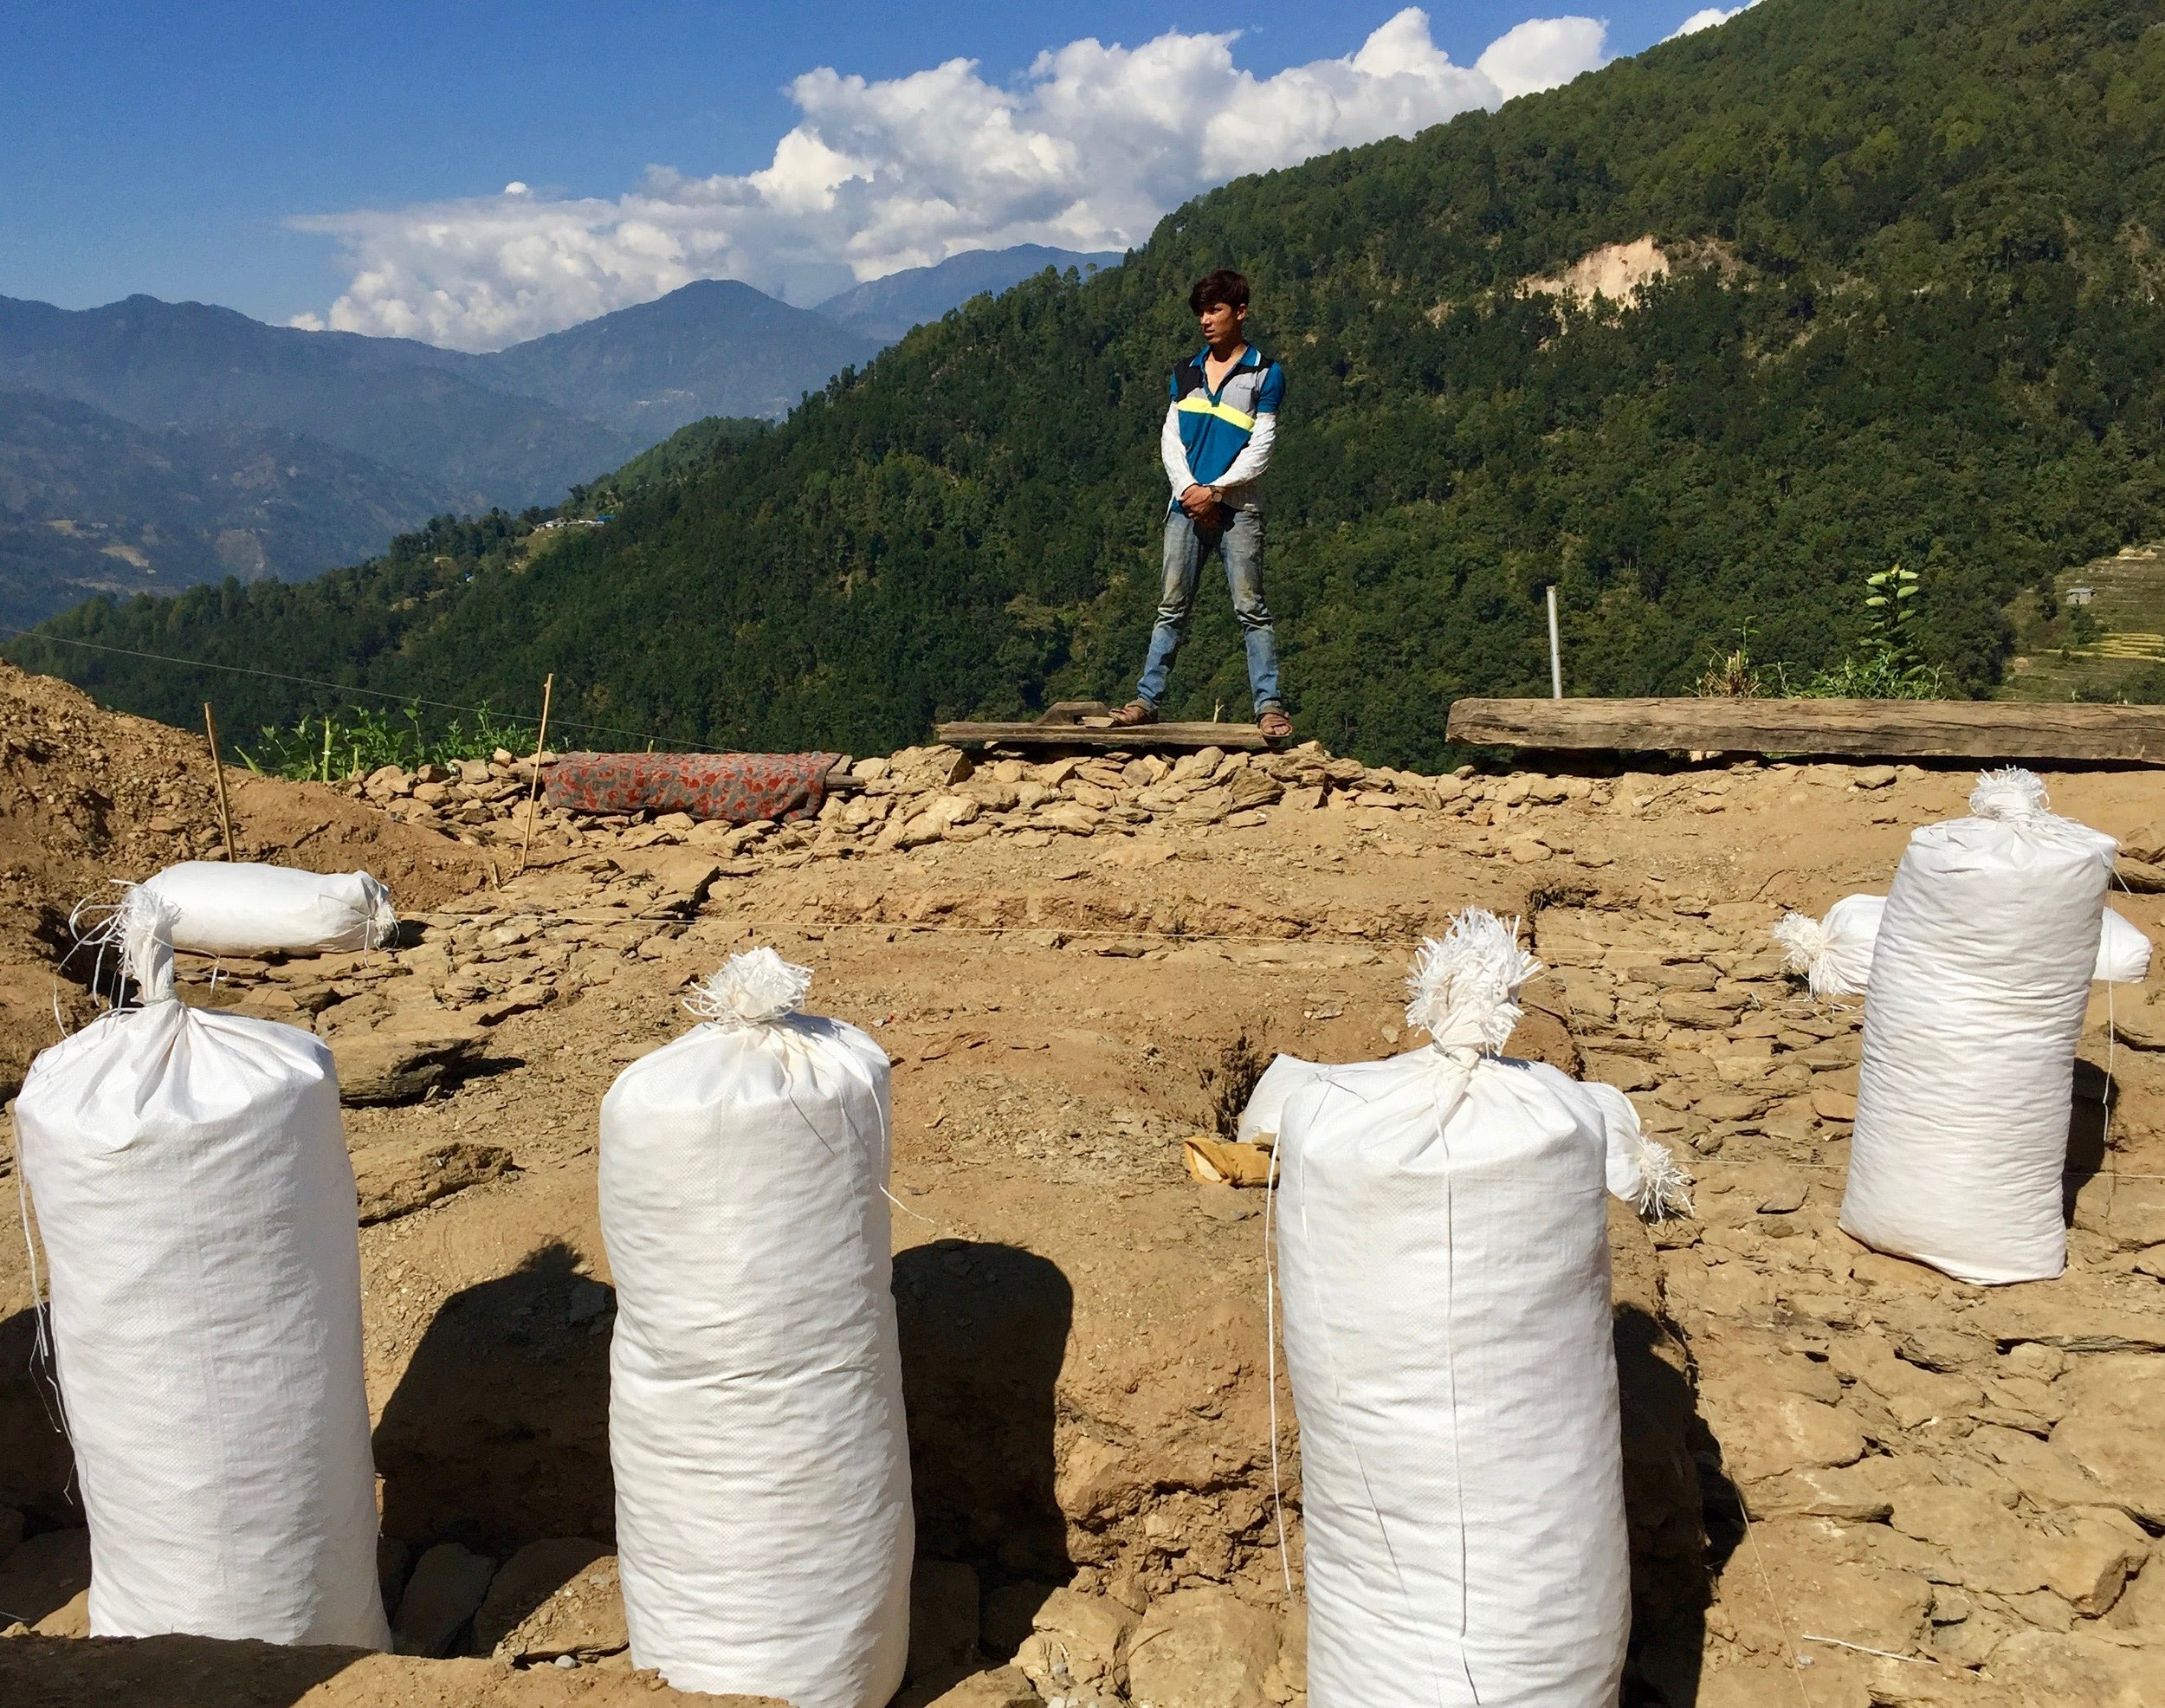 The family's son Namraj stands on the edge of the construction site at the end of a morning's work admiring the progress. Filled gravel bags cover the site and the Langtang mountain range hides behind the clouds in the distance.